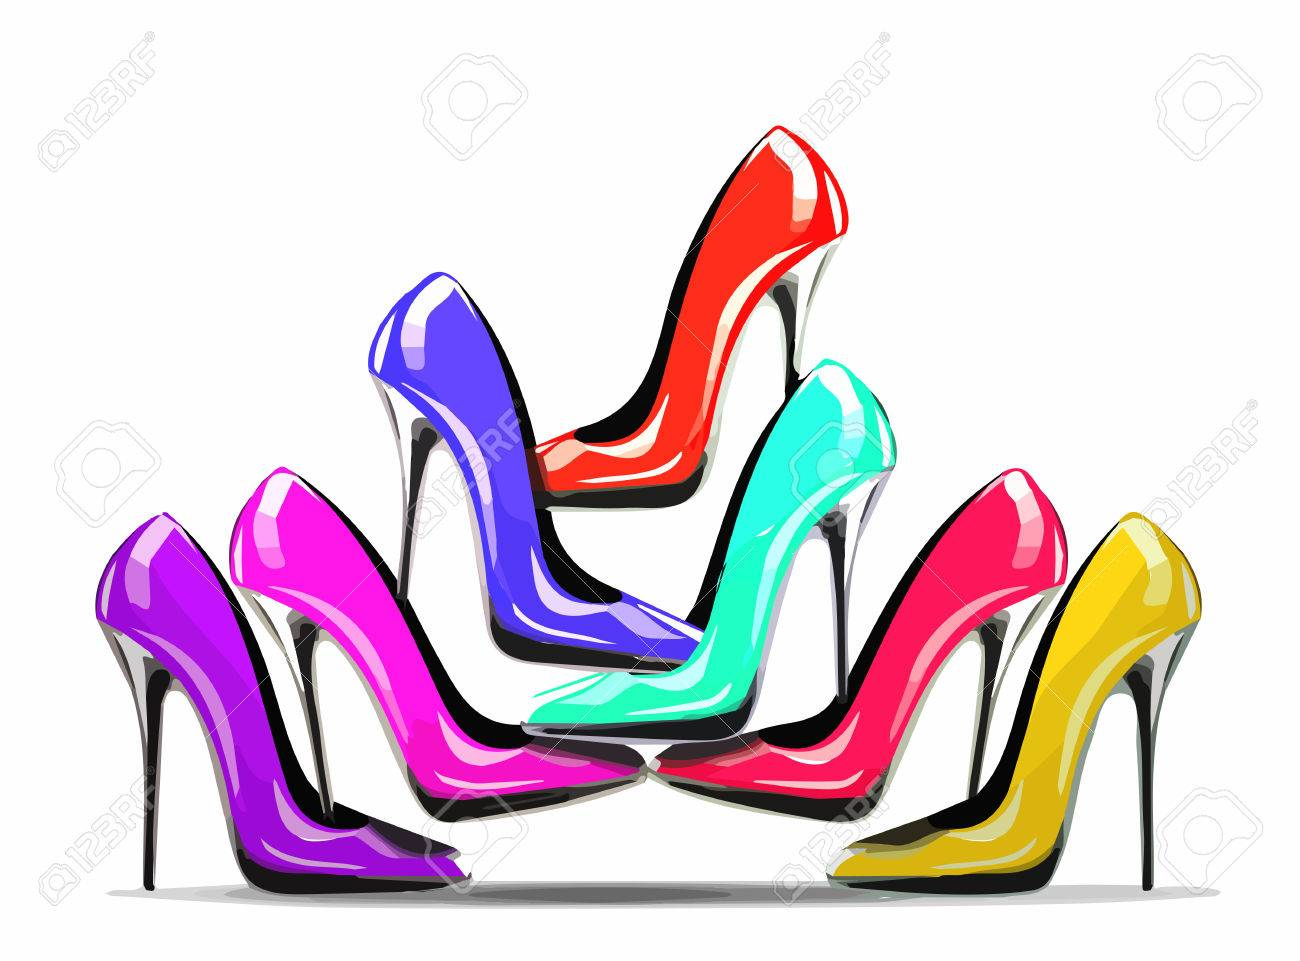 Pile of colorful high heel shoes in the shop, isolated on white background, concept for shopping and fashion sale. eps10 - 67822607